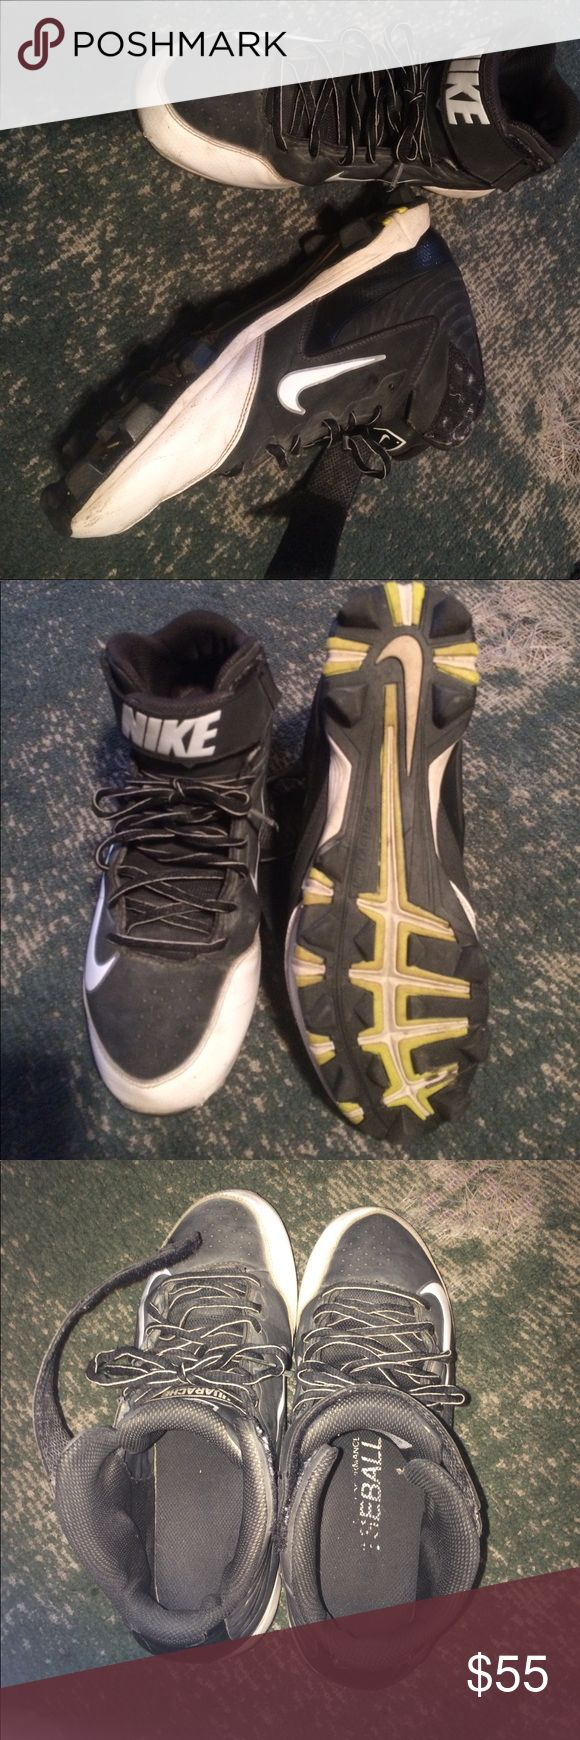 Nike high top cleats Grey &white 91/2 Nike Shoes Athletic Shoes